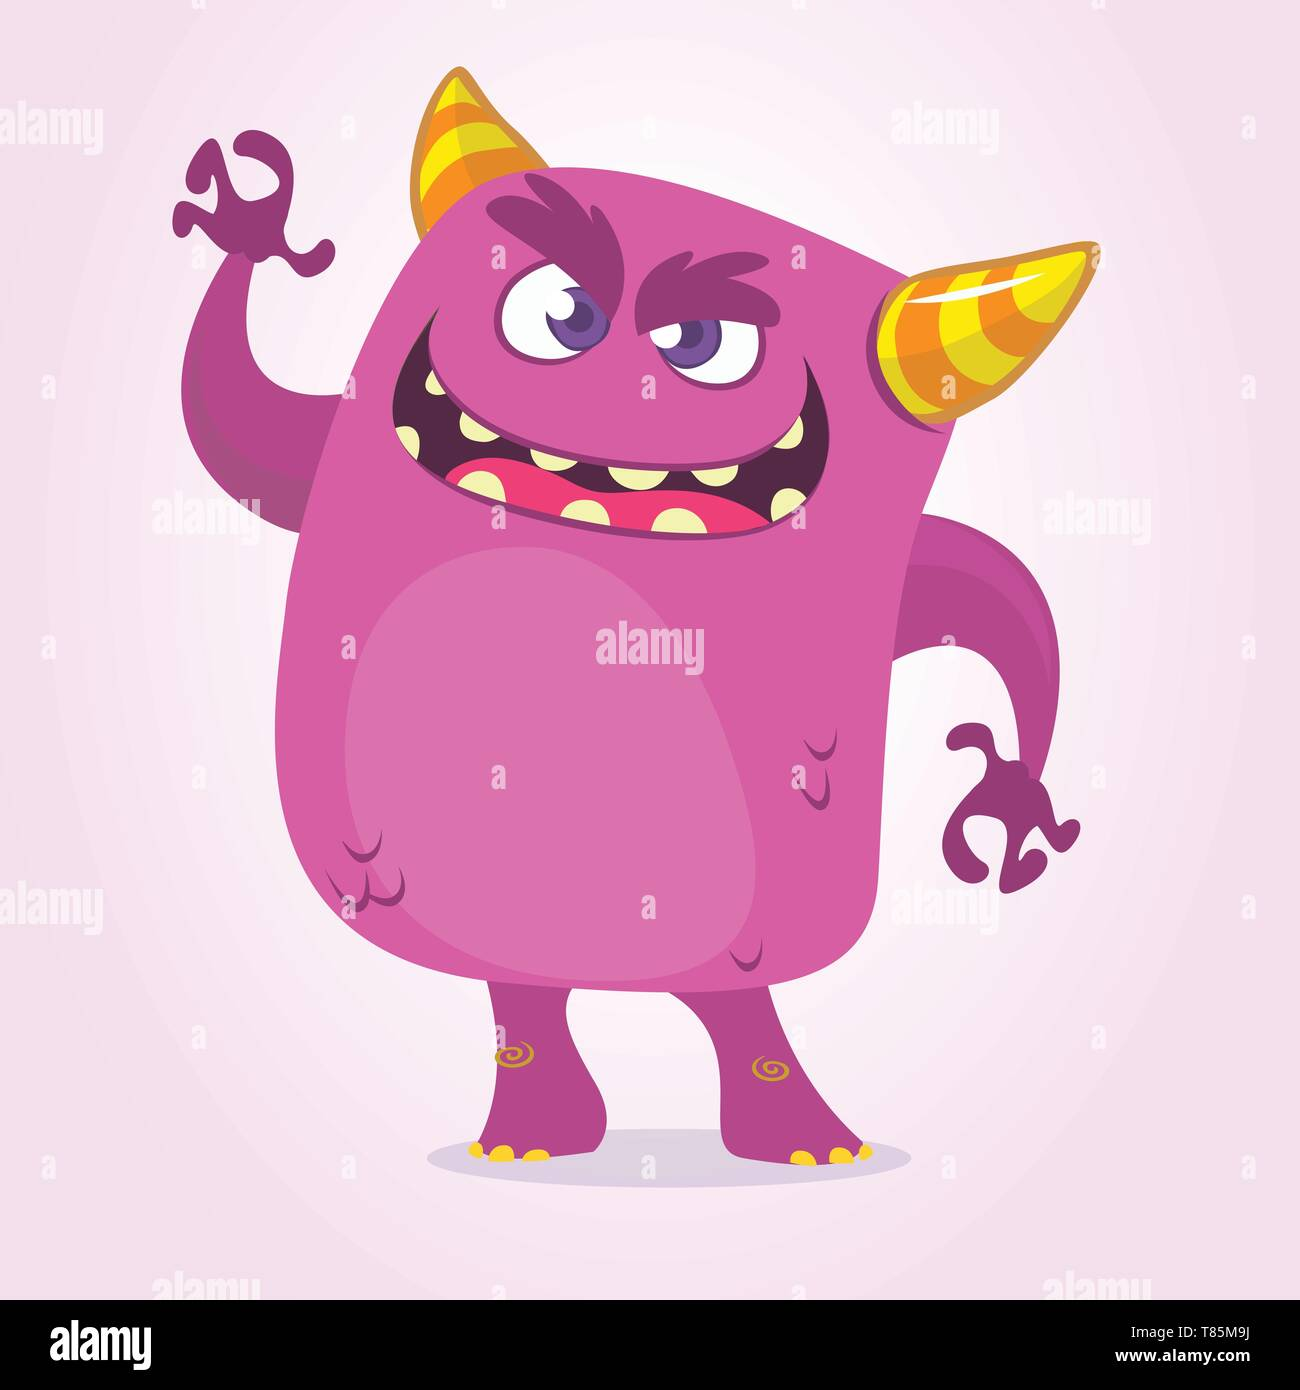 Cartoon Scary Monster With Big Mouth waving. Vector purple monster character illustration. Halloween design - Stock Image